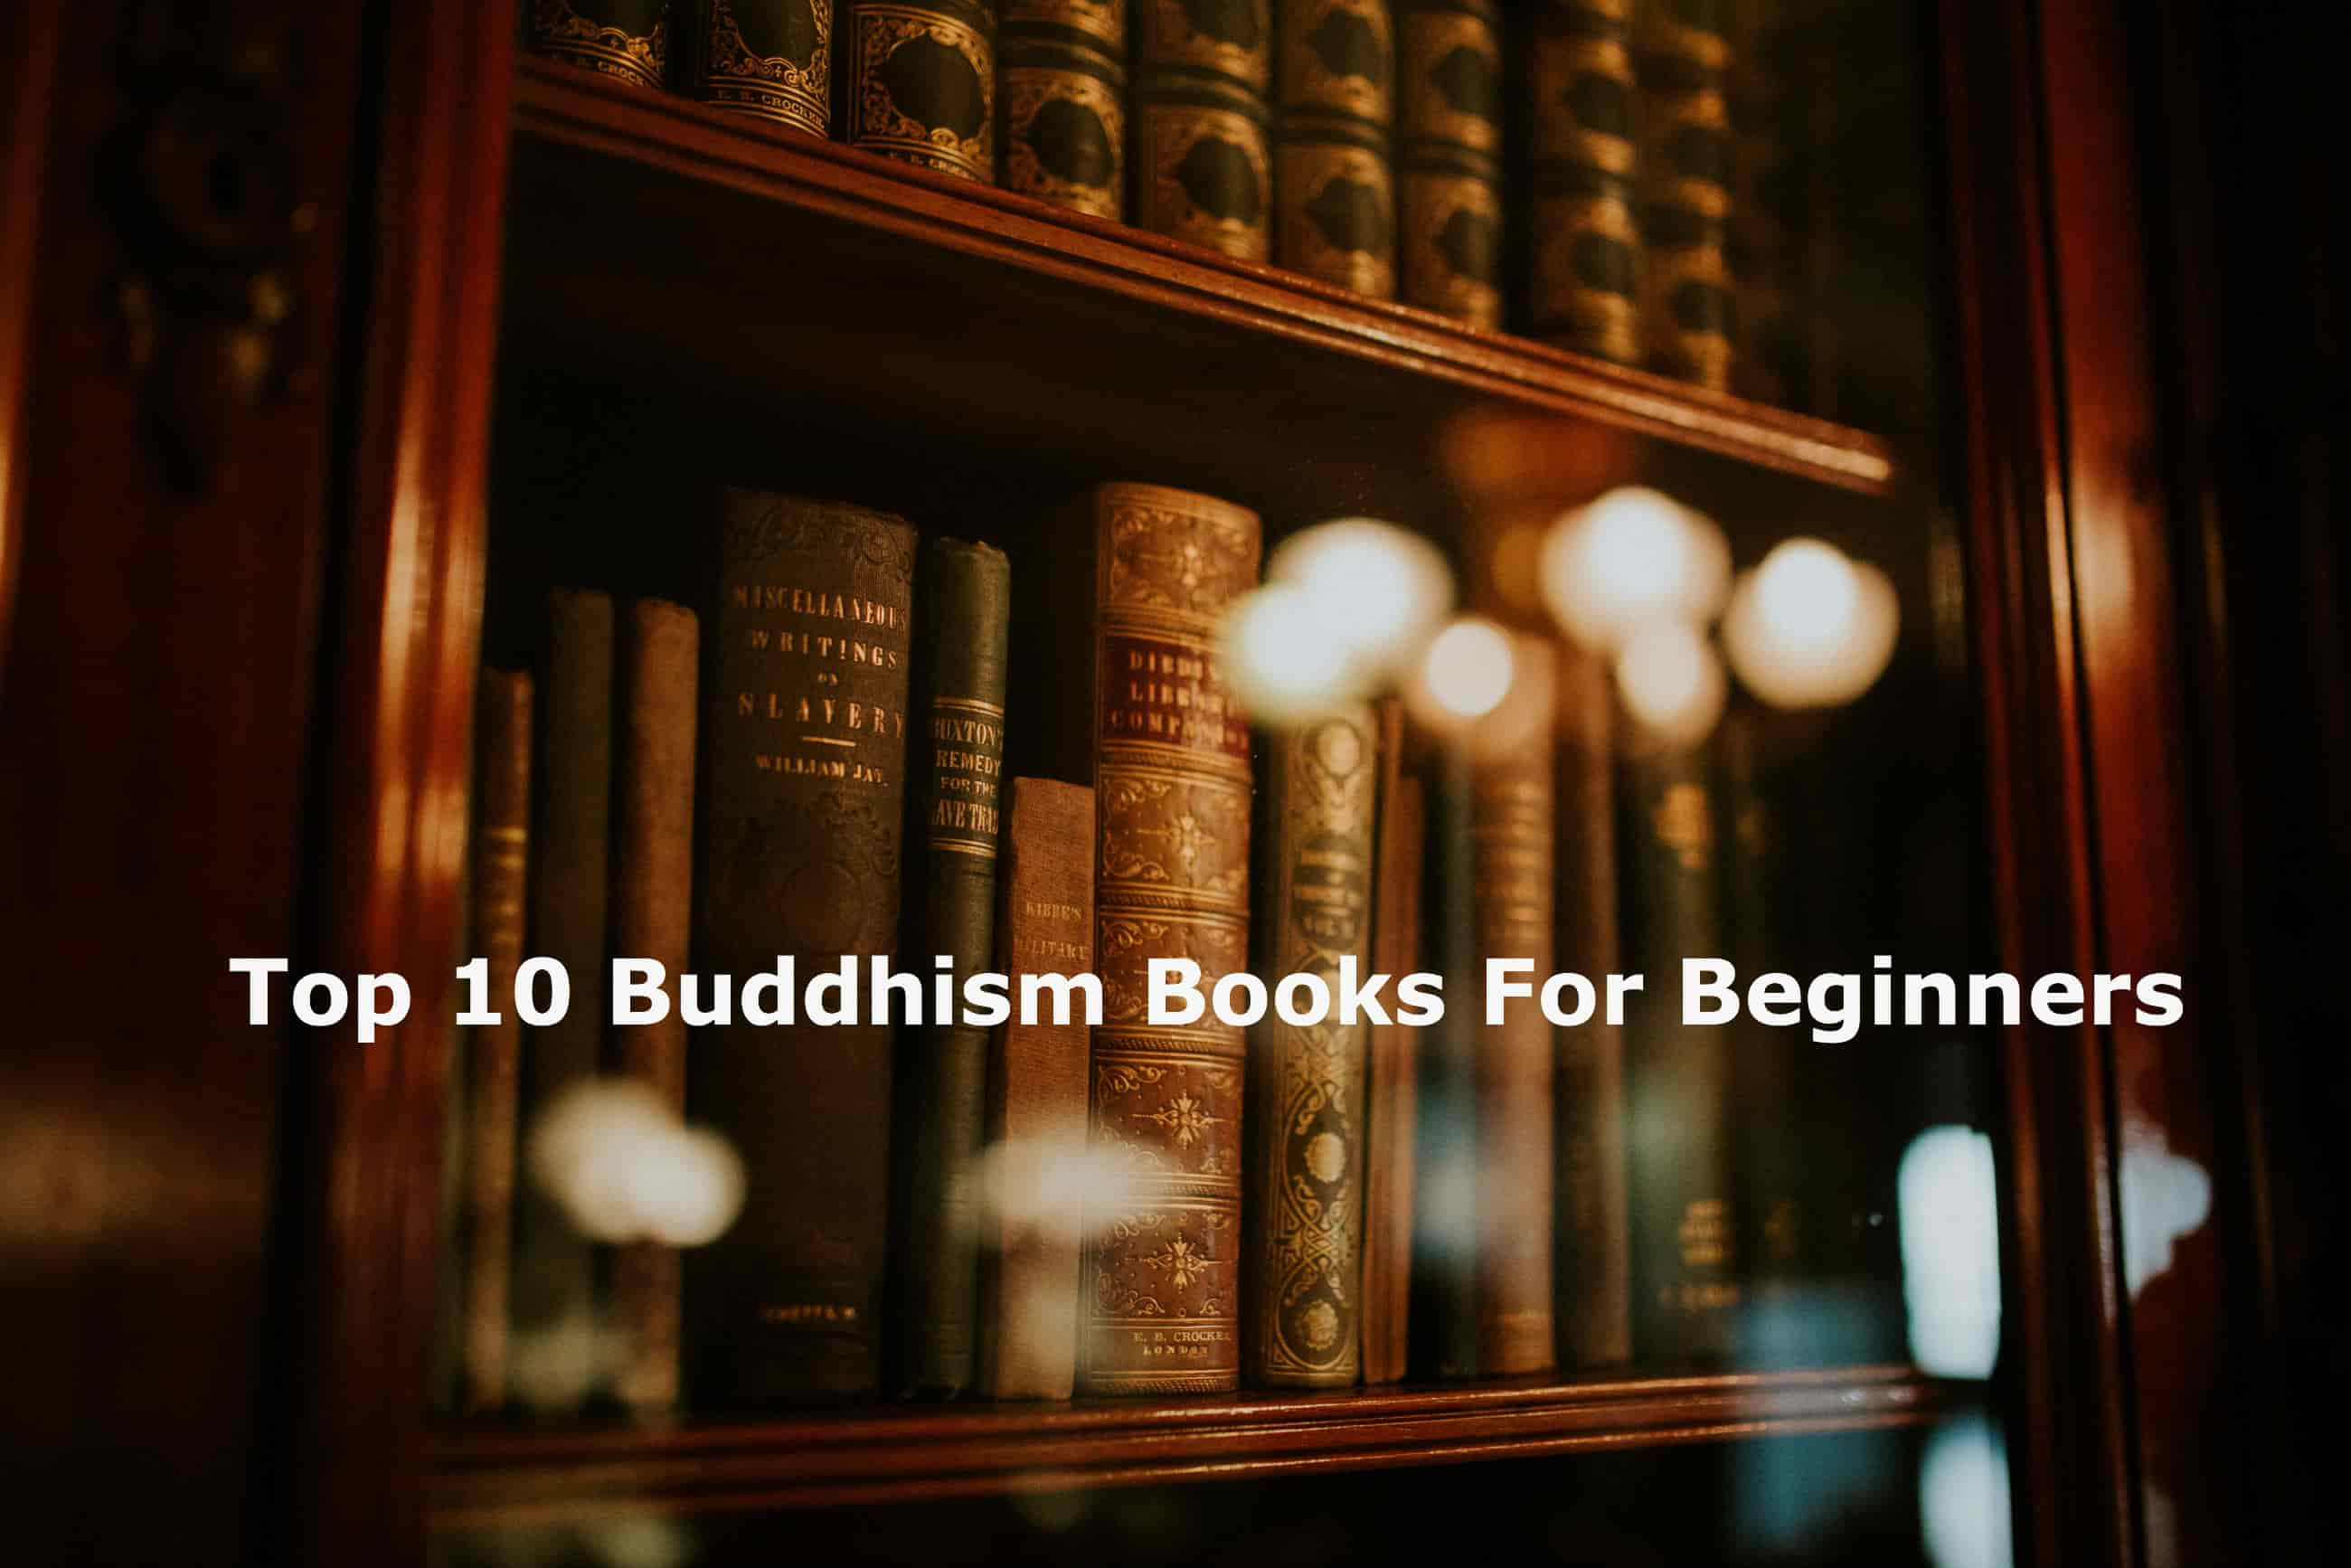 Top 10 Buddhism Books For Beginners